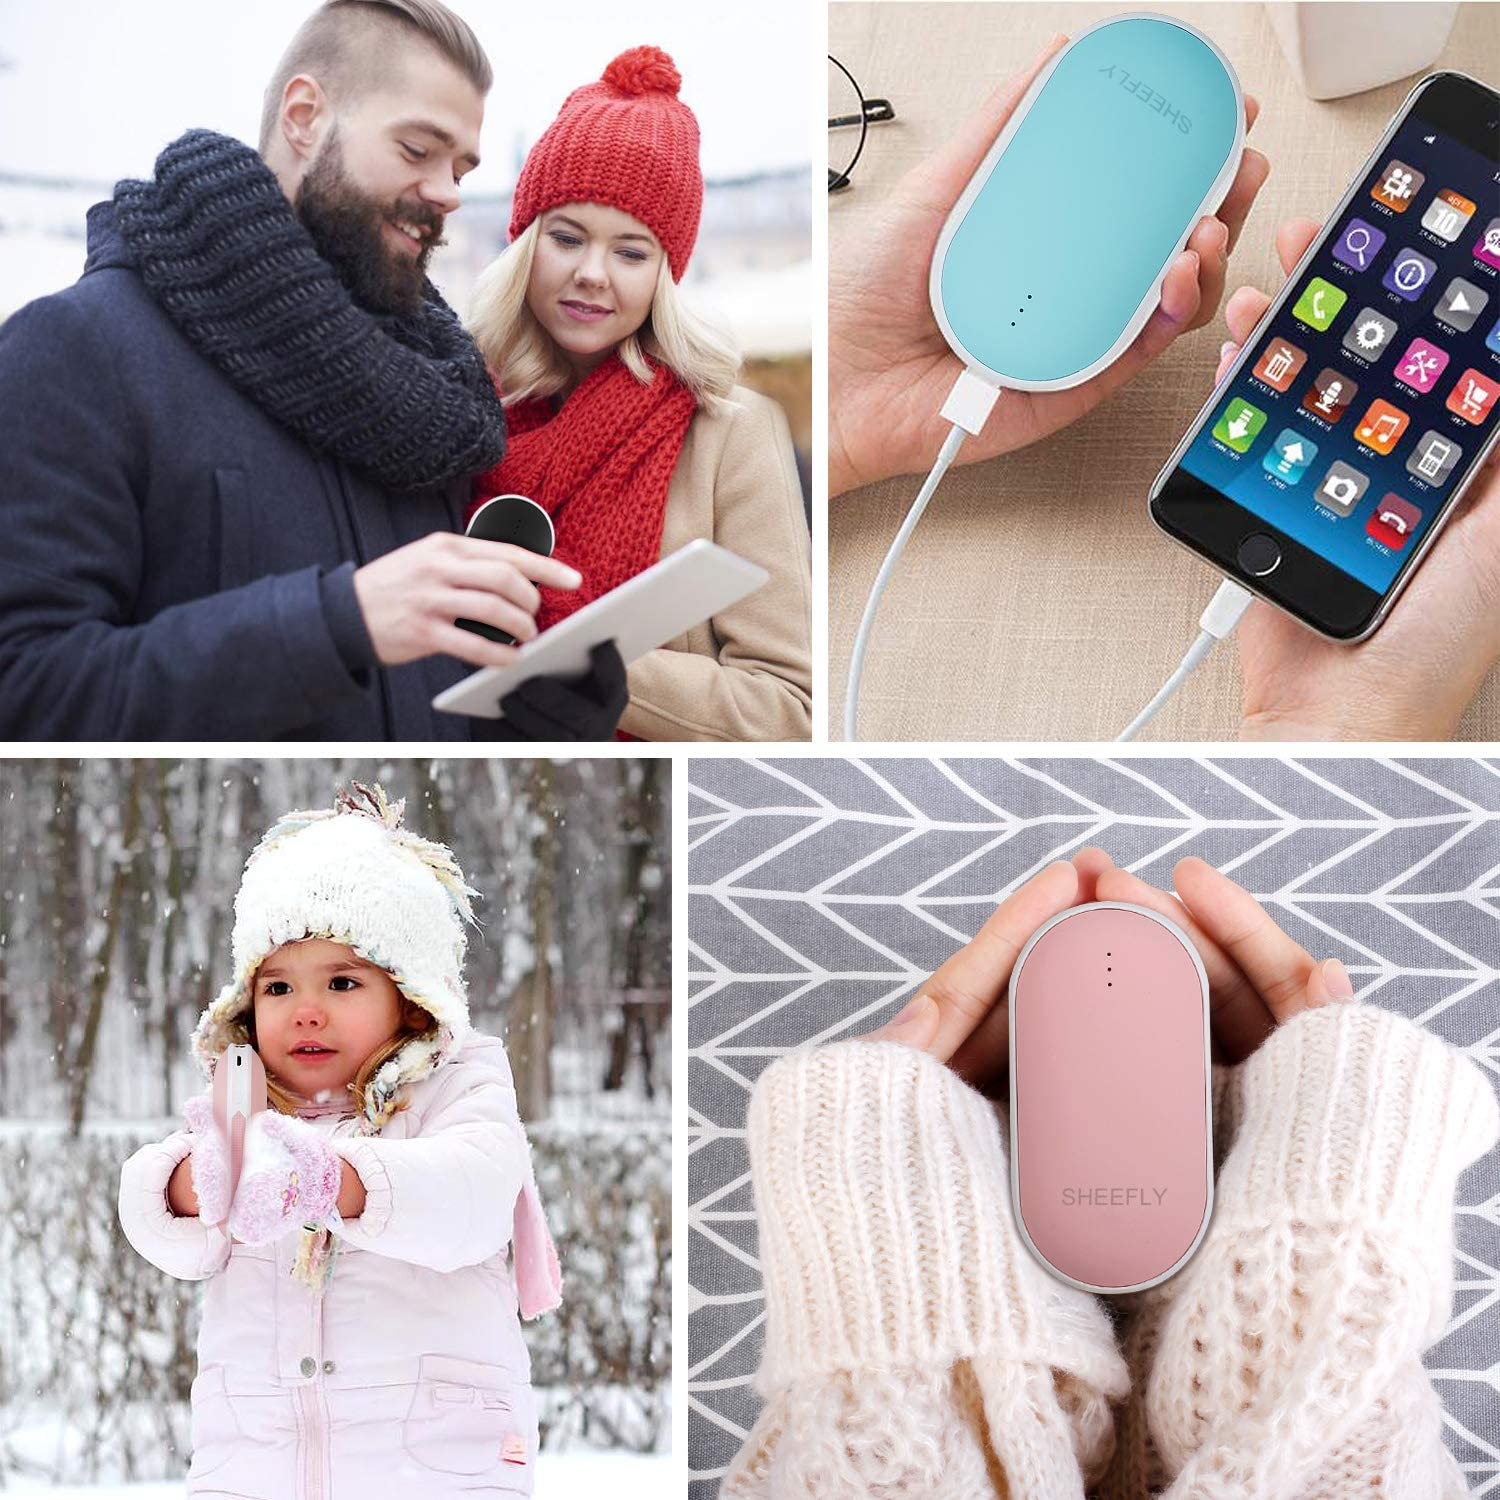 Winter Gifts for Women /& Men SHEEFLY Hand Warmers Rechargeable Power Bank 5200mAh Electric Portable Pocket Hand Warmer Heat Therapy Great for Outdoor Sports